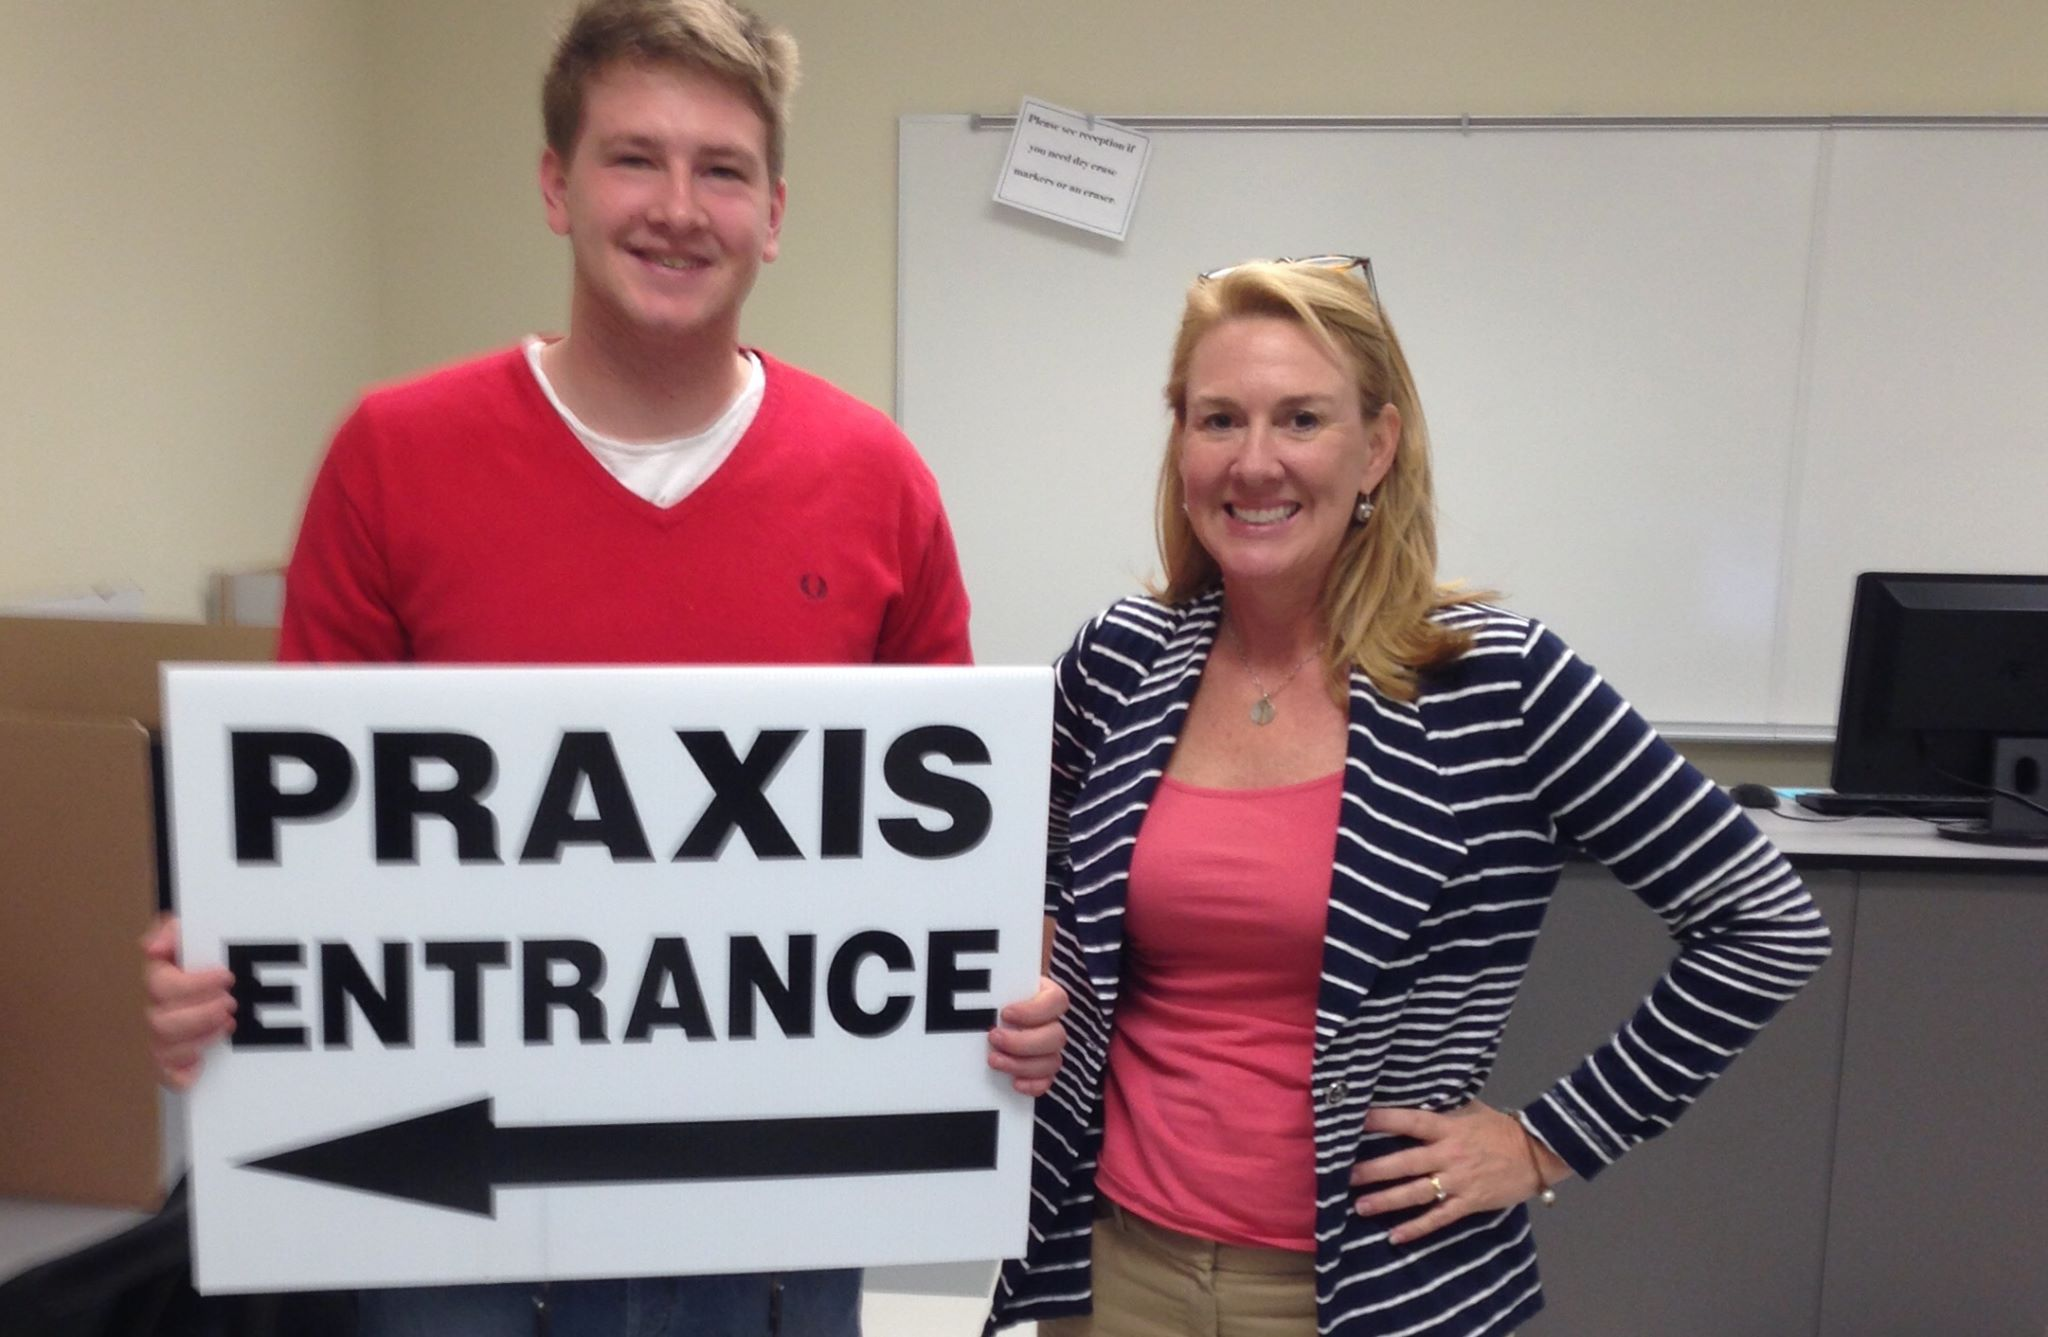 Kenda and Student with Praxis sign